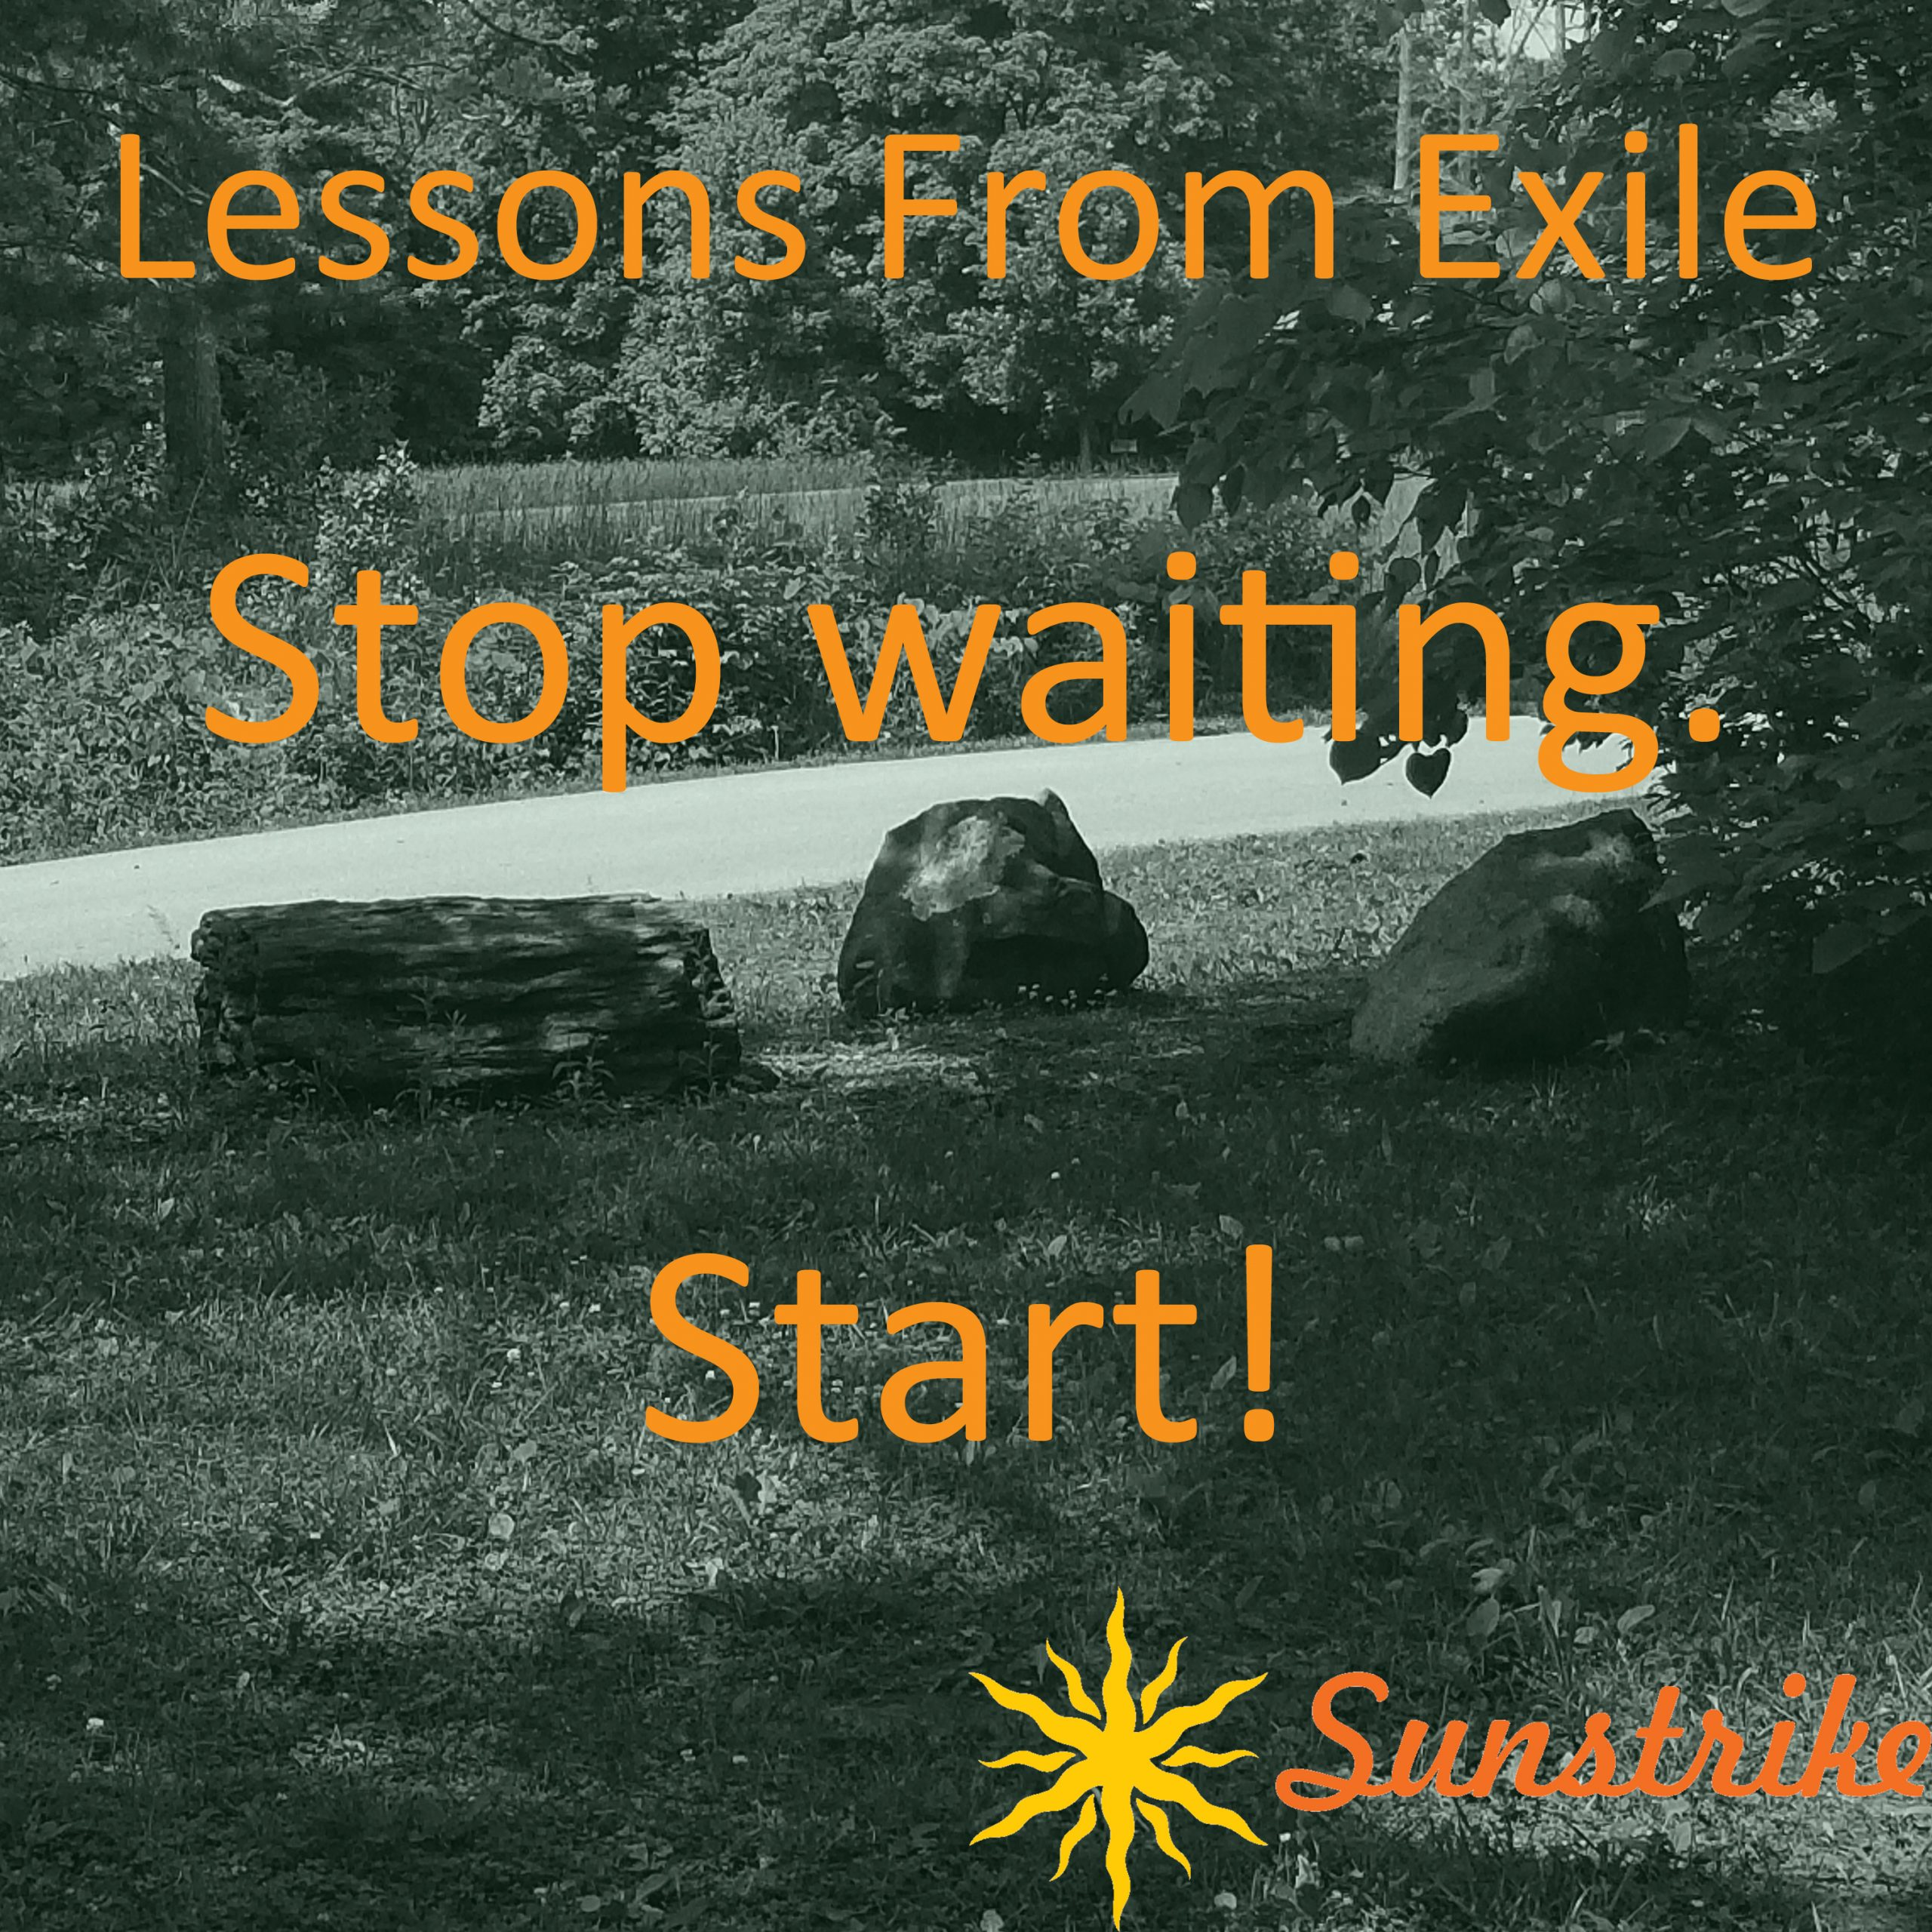 Lessons from Exile #50: Stop Waiting! Start!